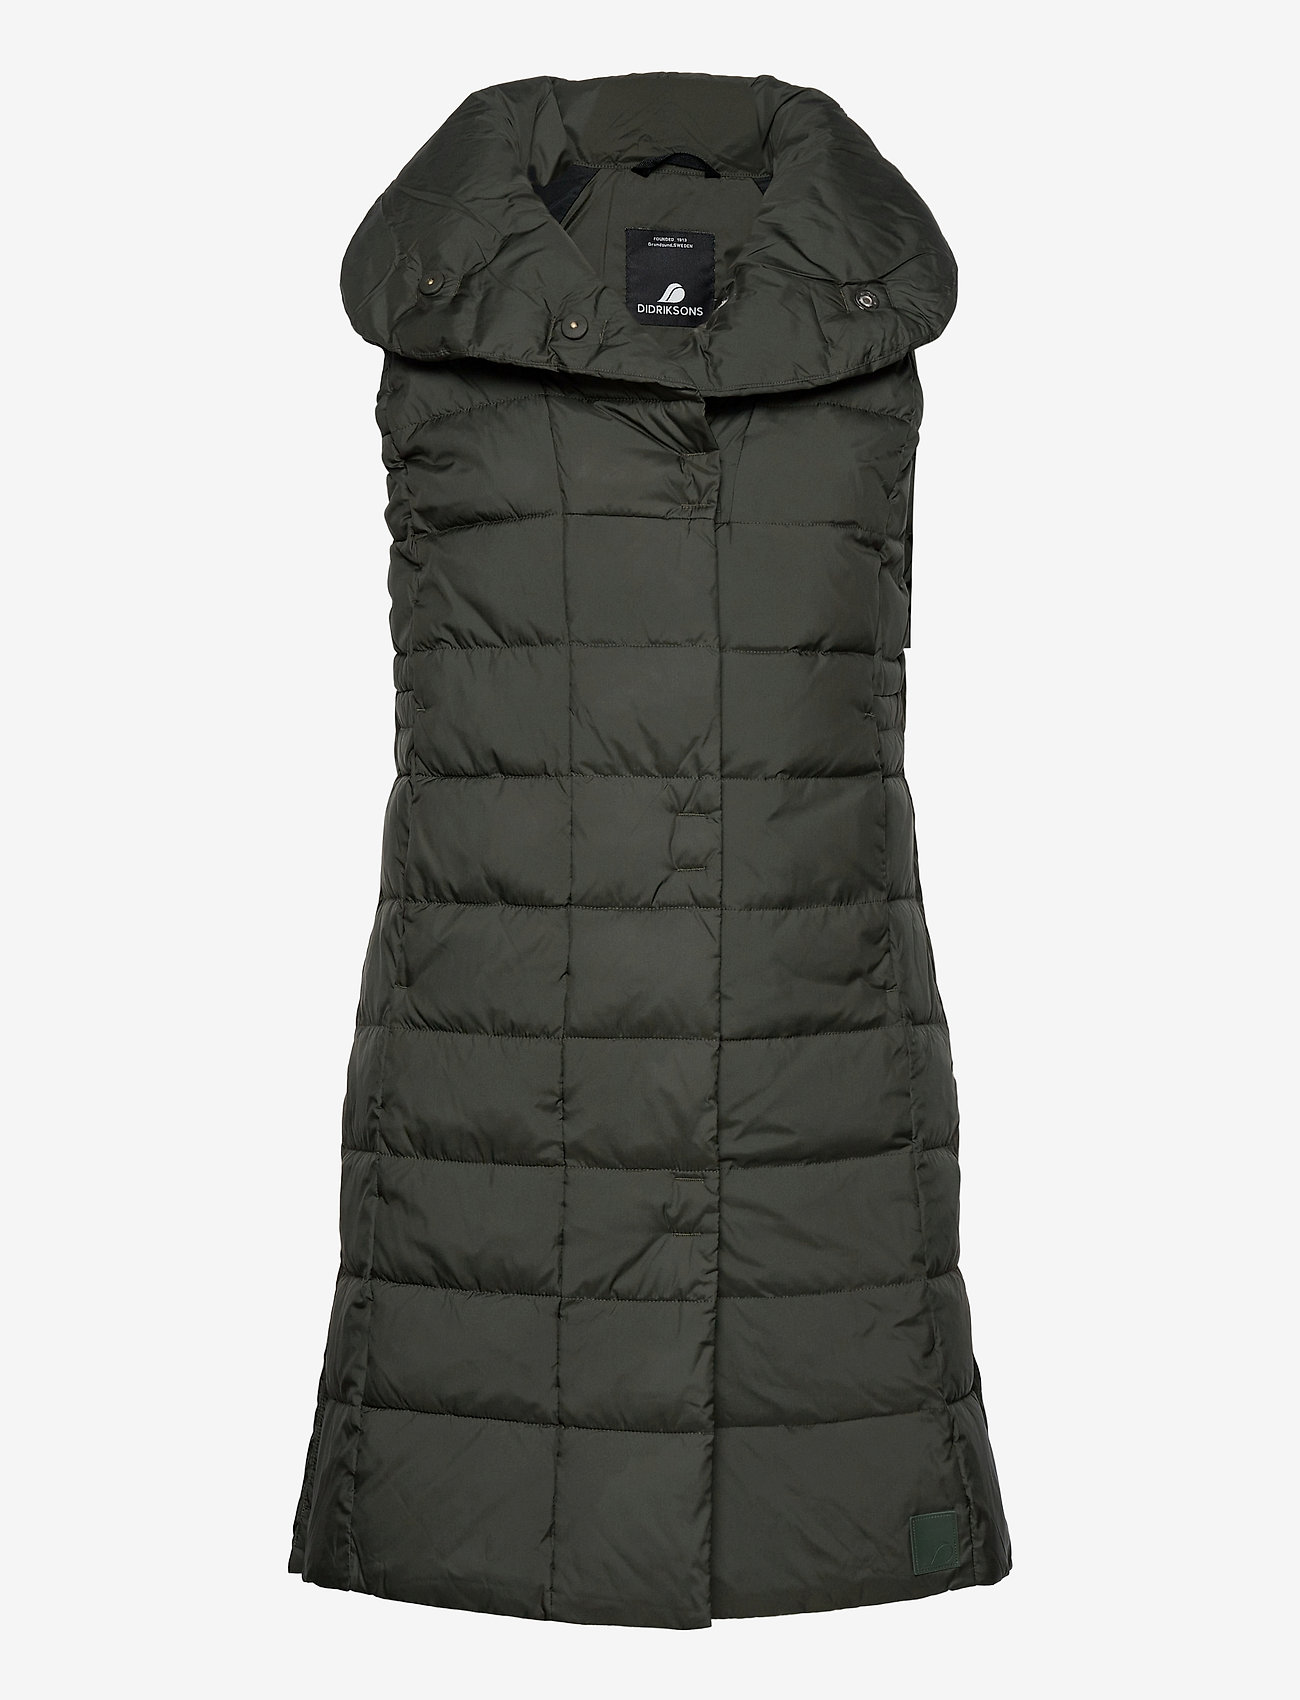 Didriksons - MY WNS VEST - puffer vests - forest green - 1